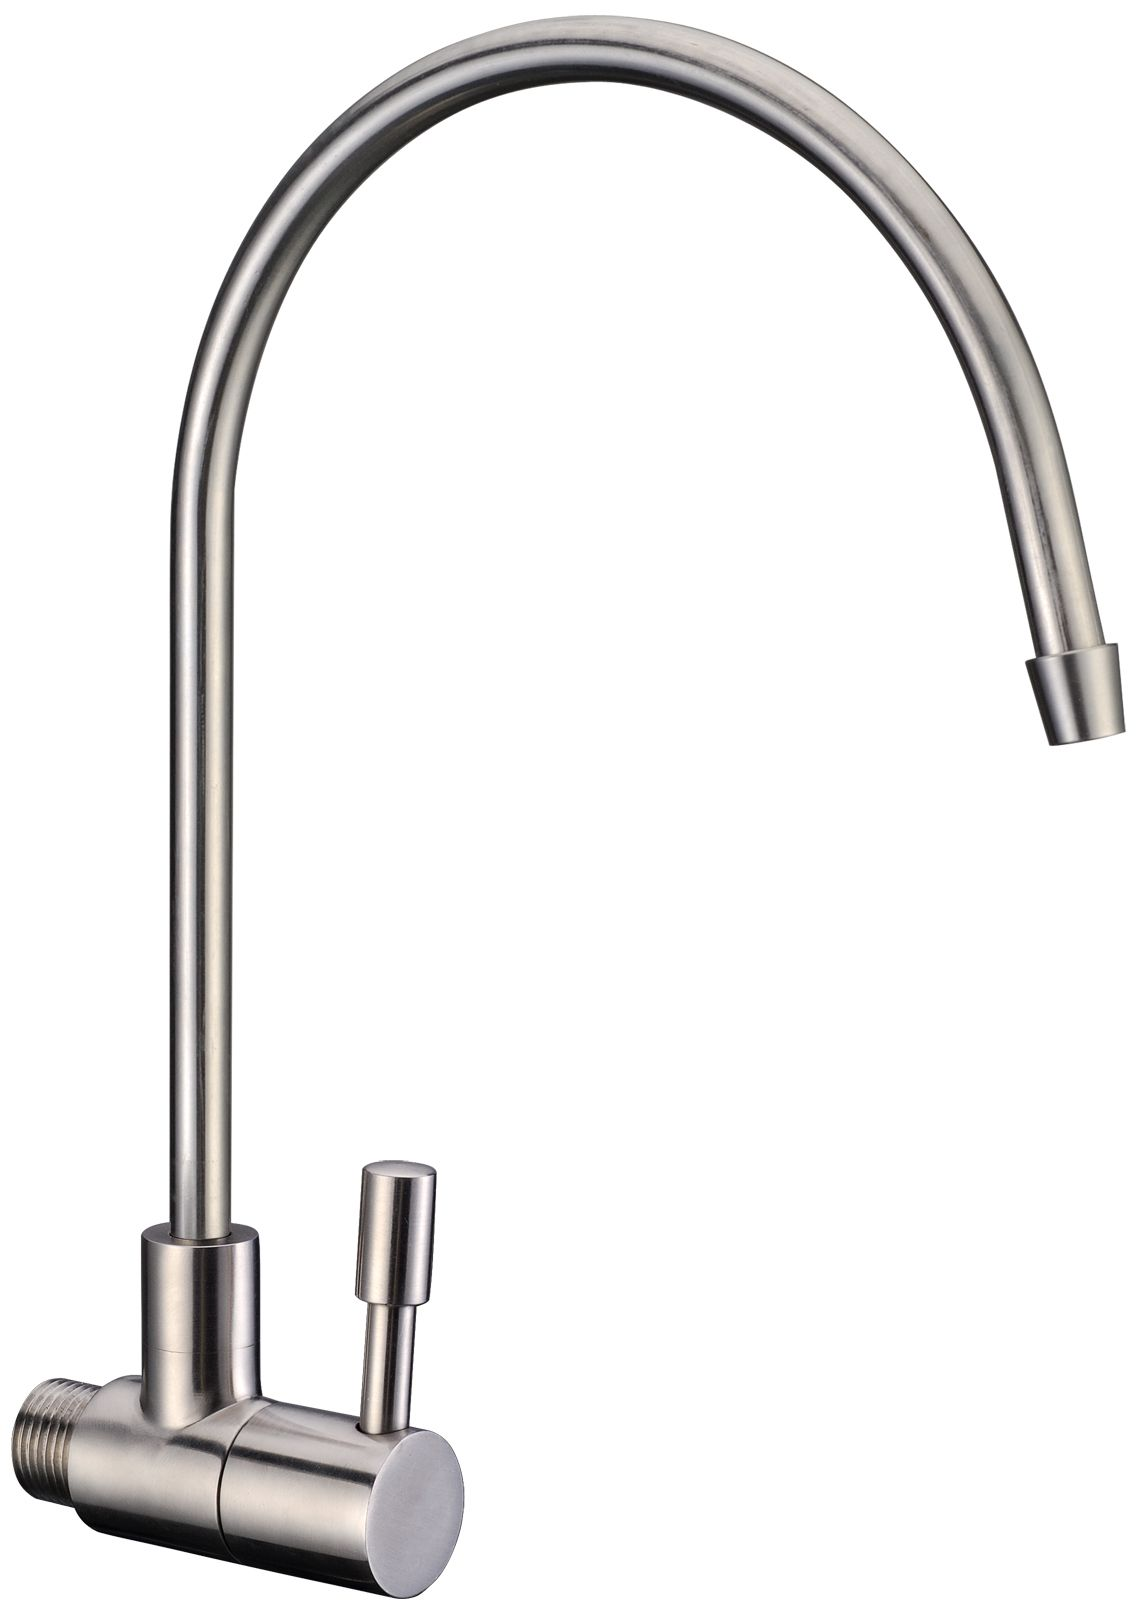 Cheap Kitchen Faucets On Sale At Bargain Price Buy Quality Faucet